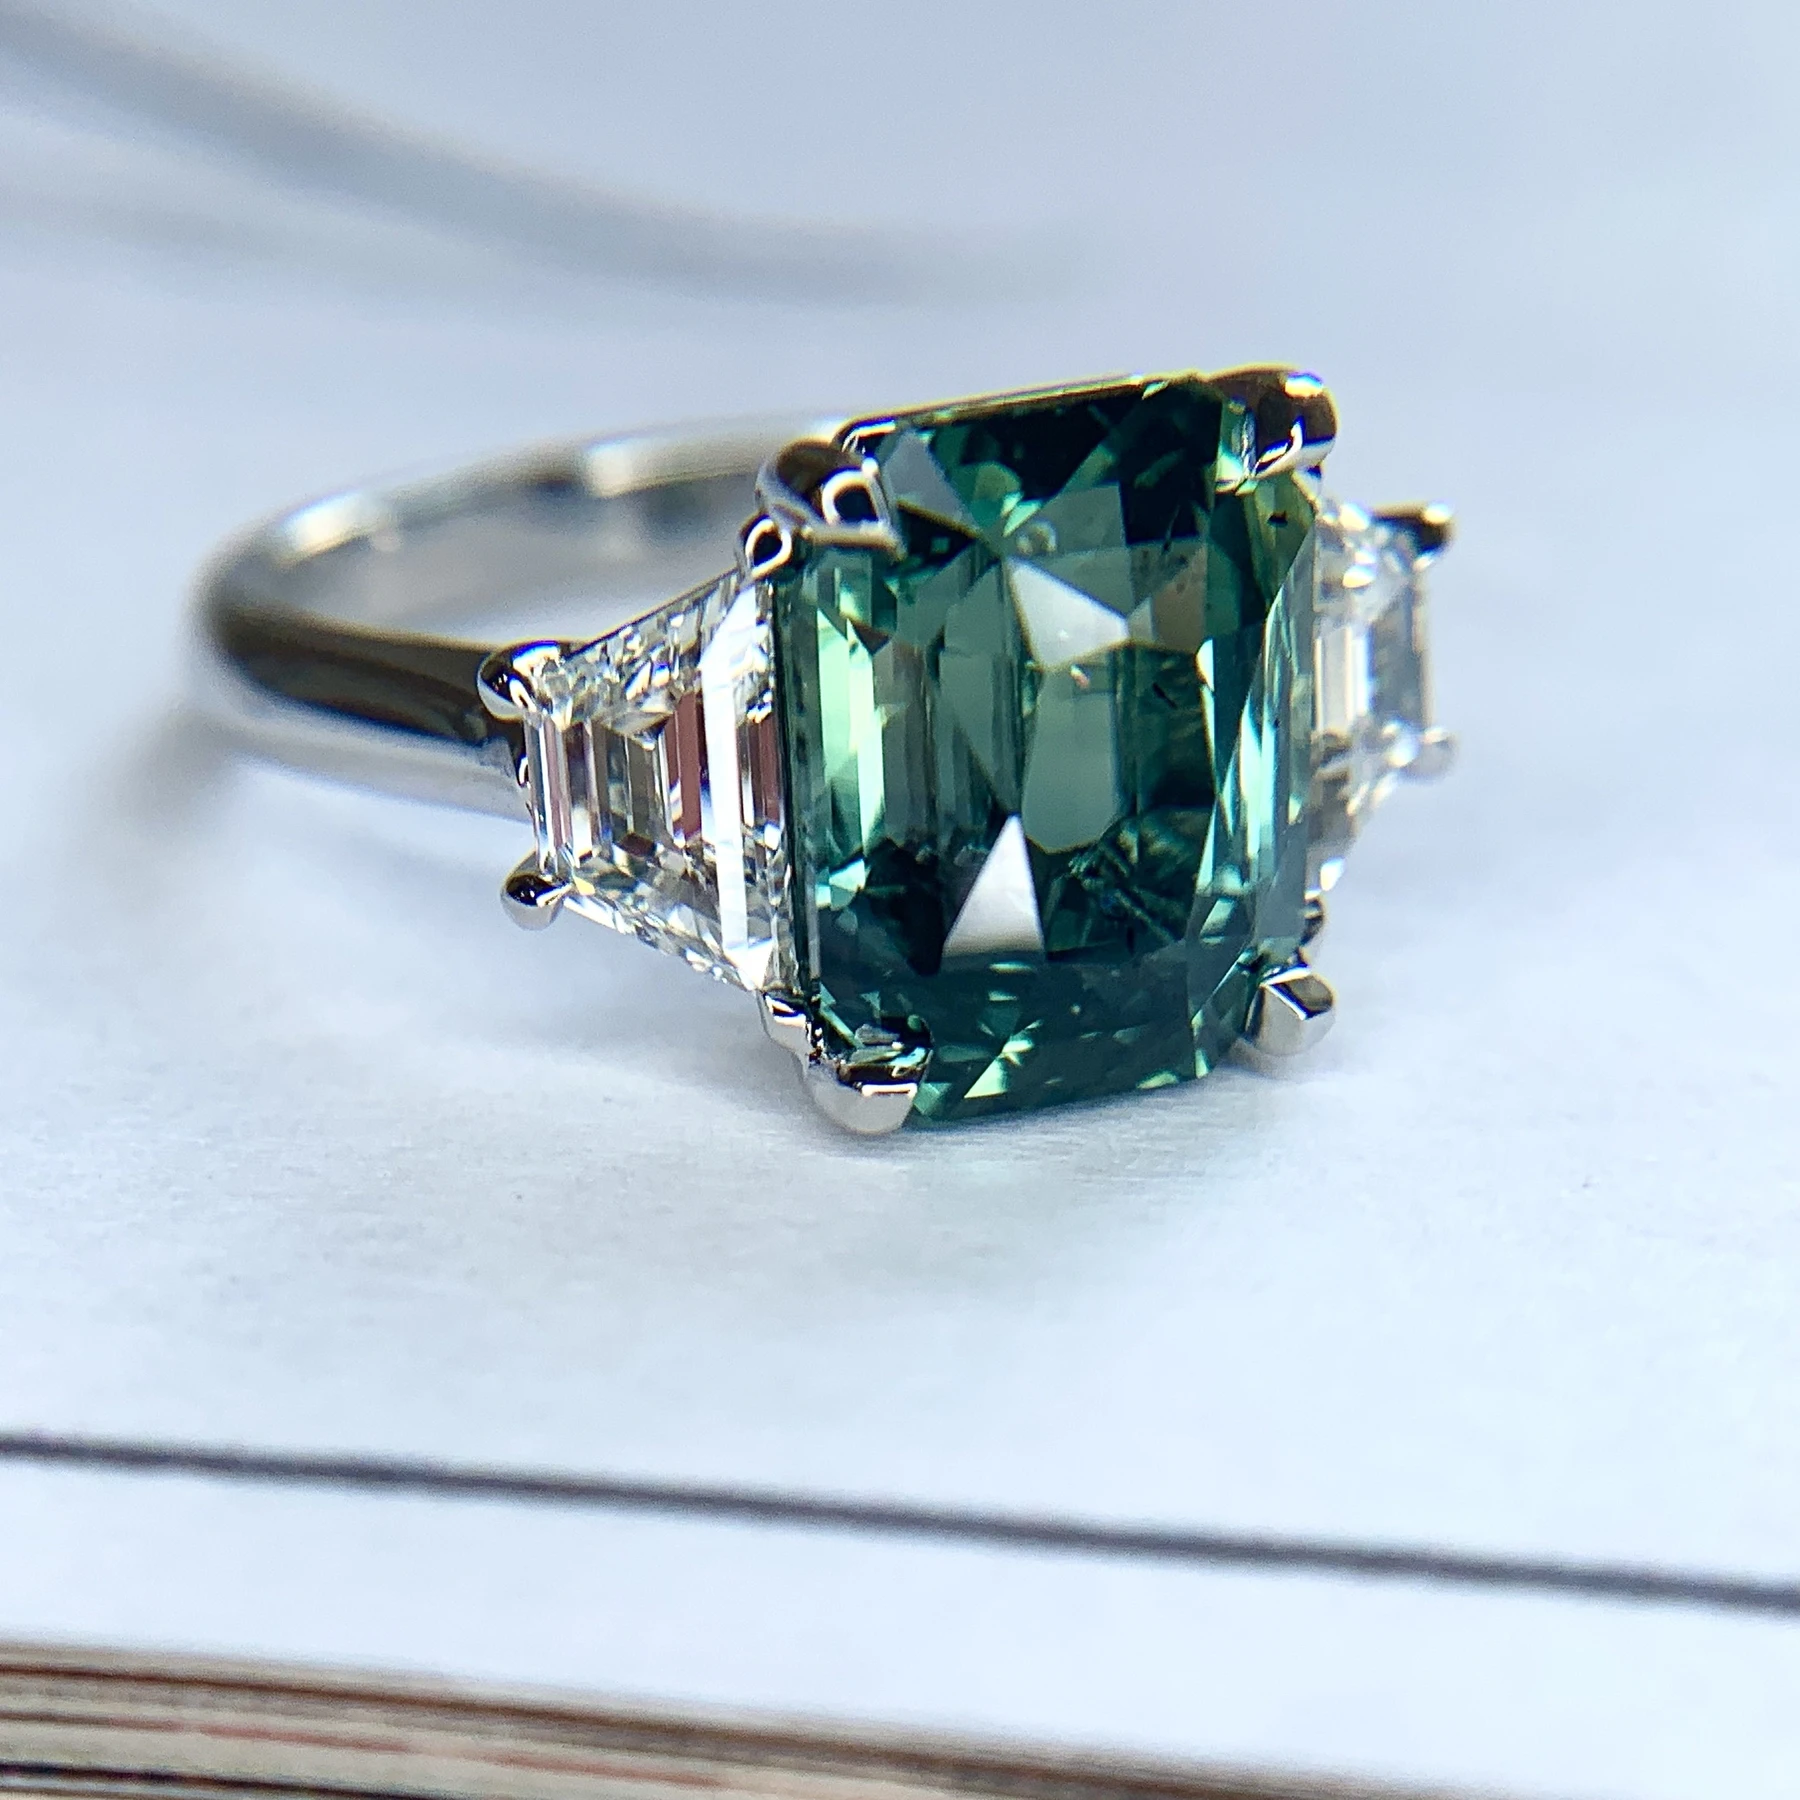 Green sapphire emerald cut engagement ring with diamond accents